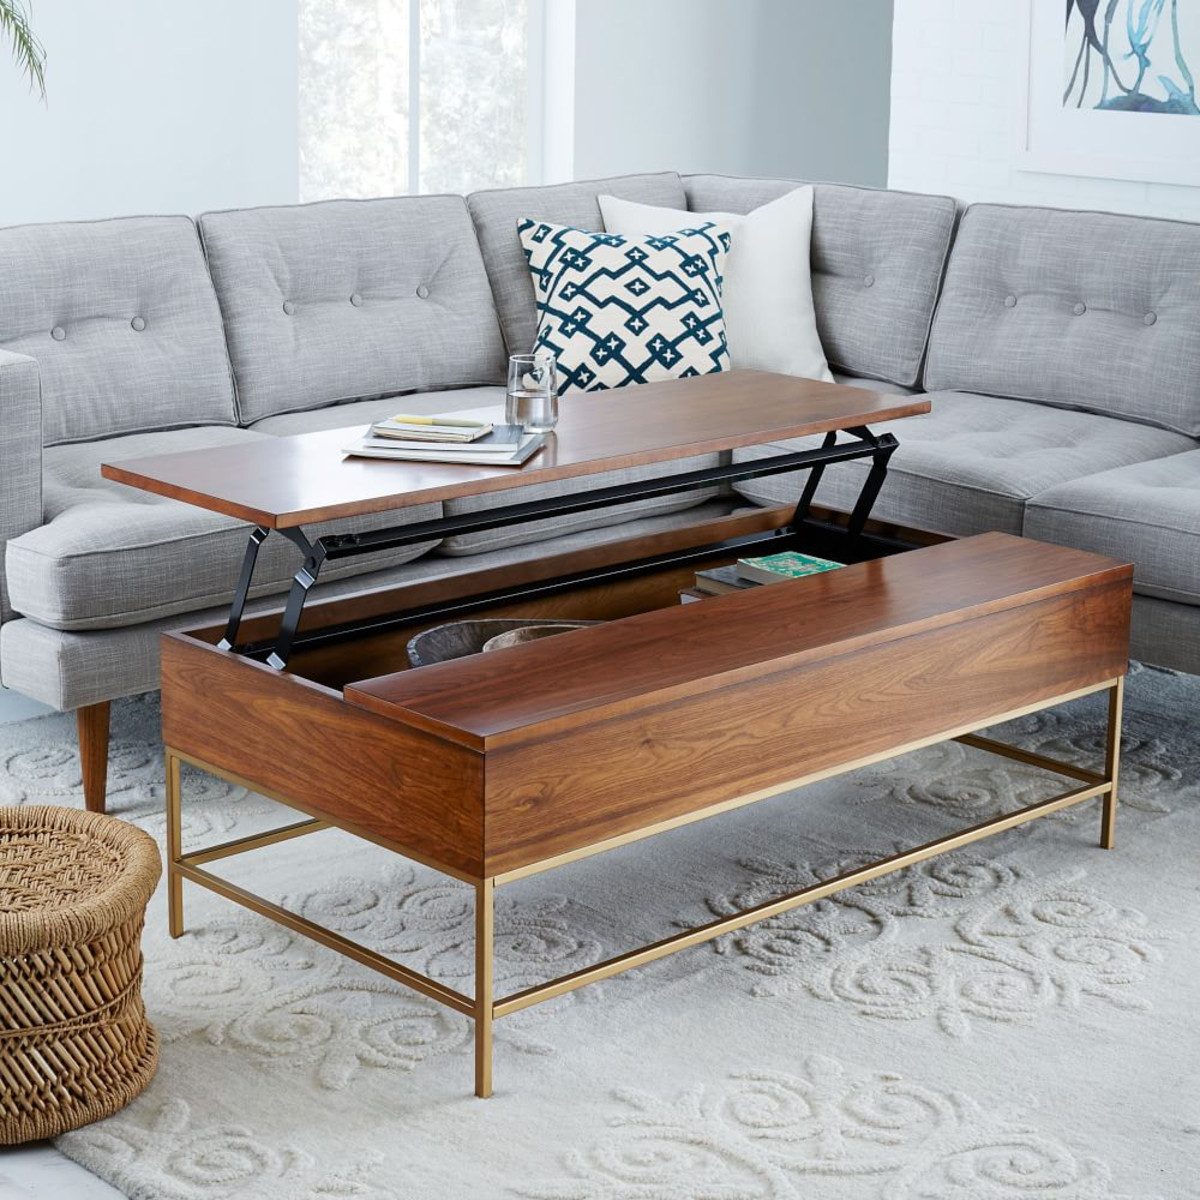 8 best coffee tables for small spaces - Brickmakers coffee table living room ...